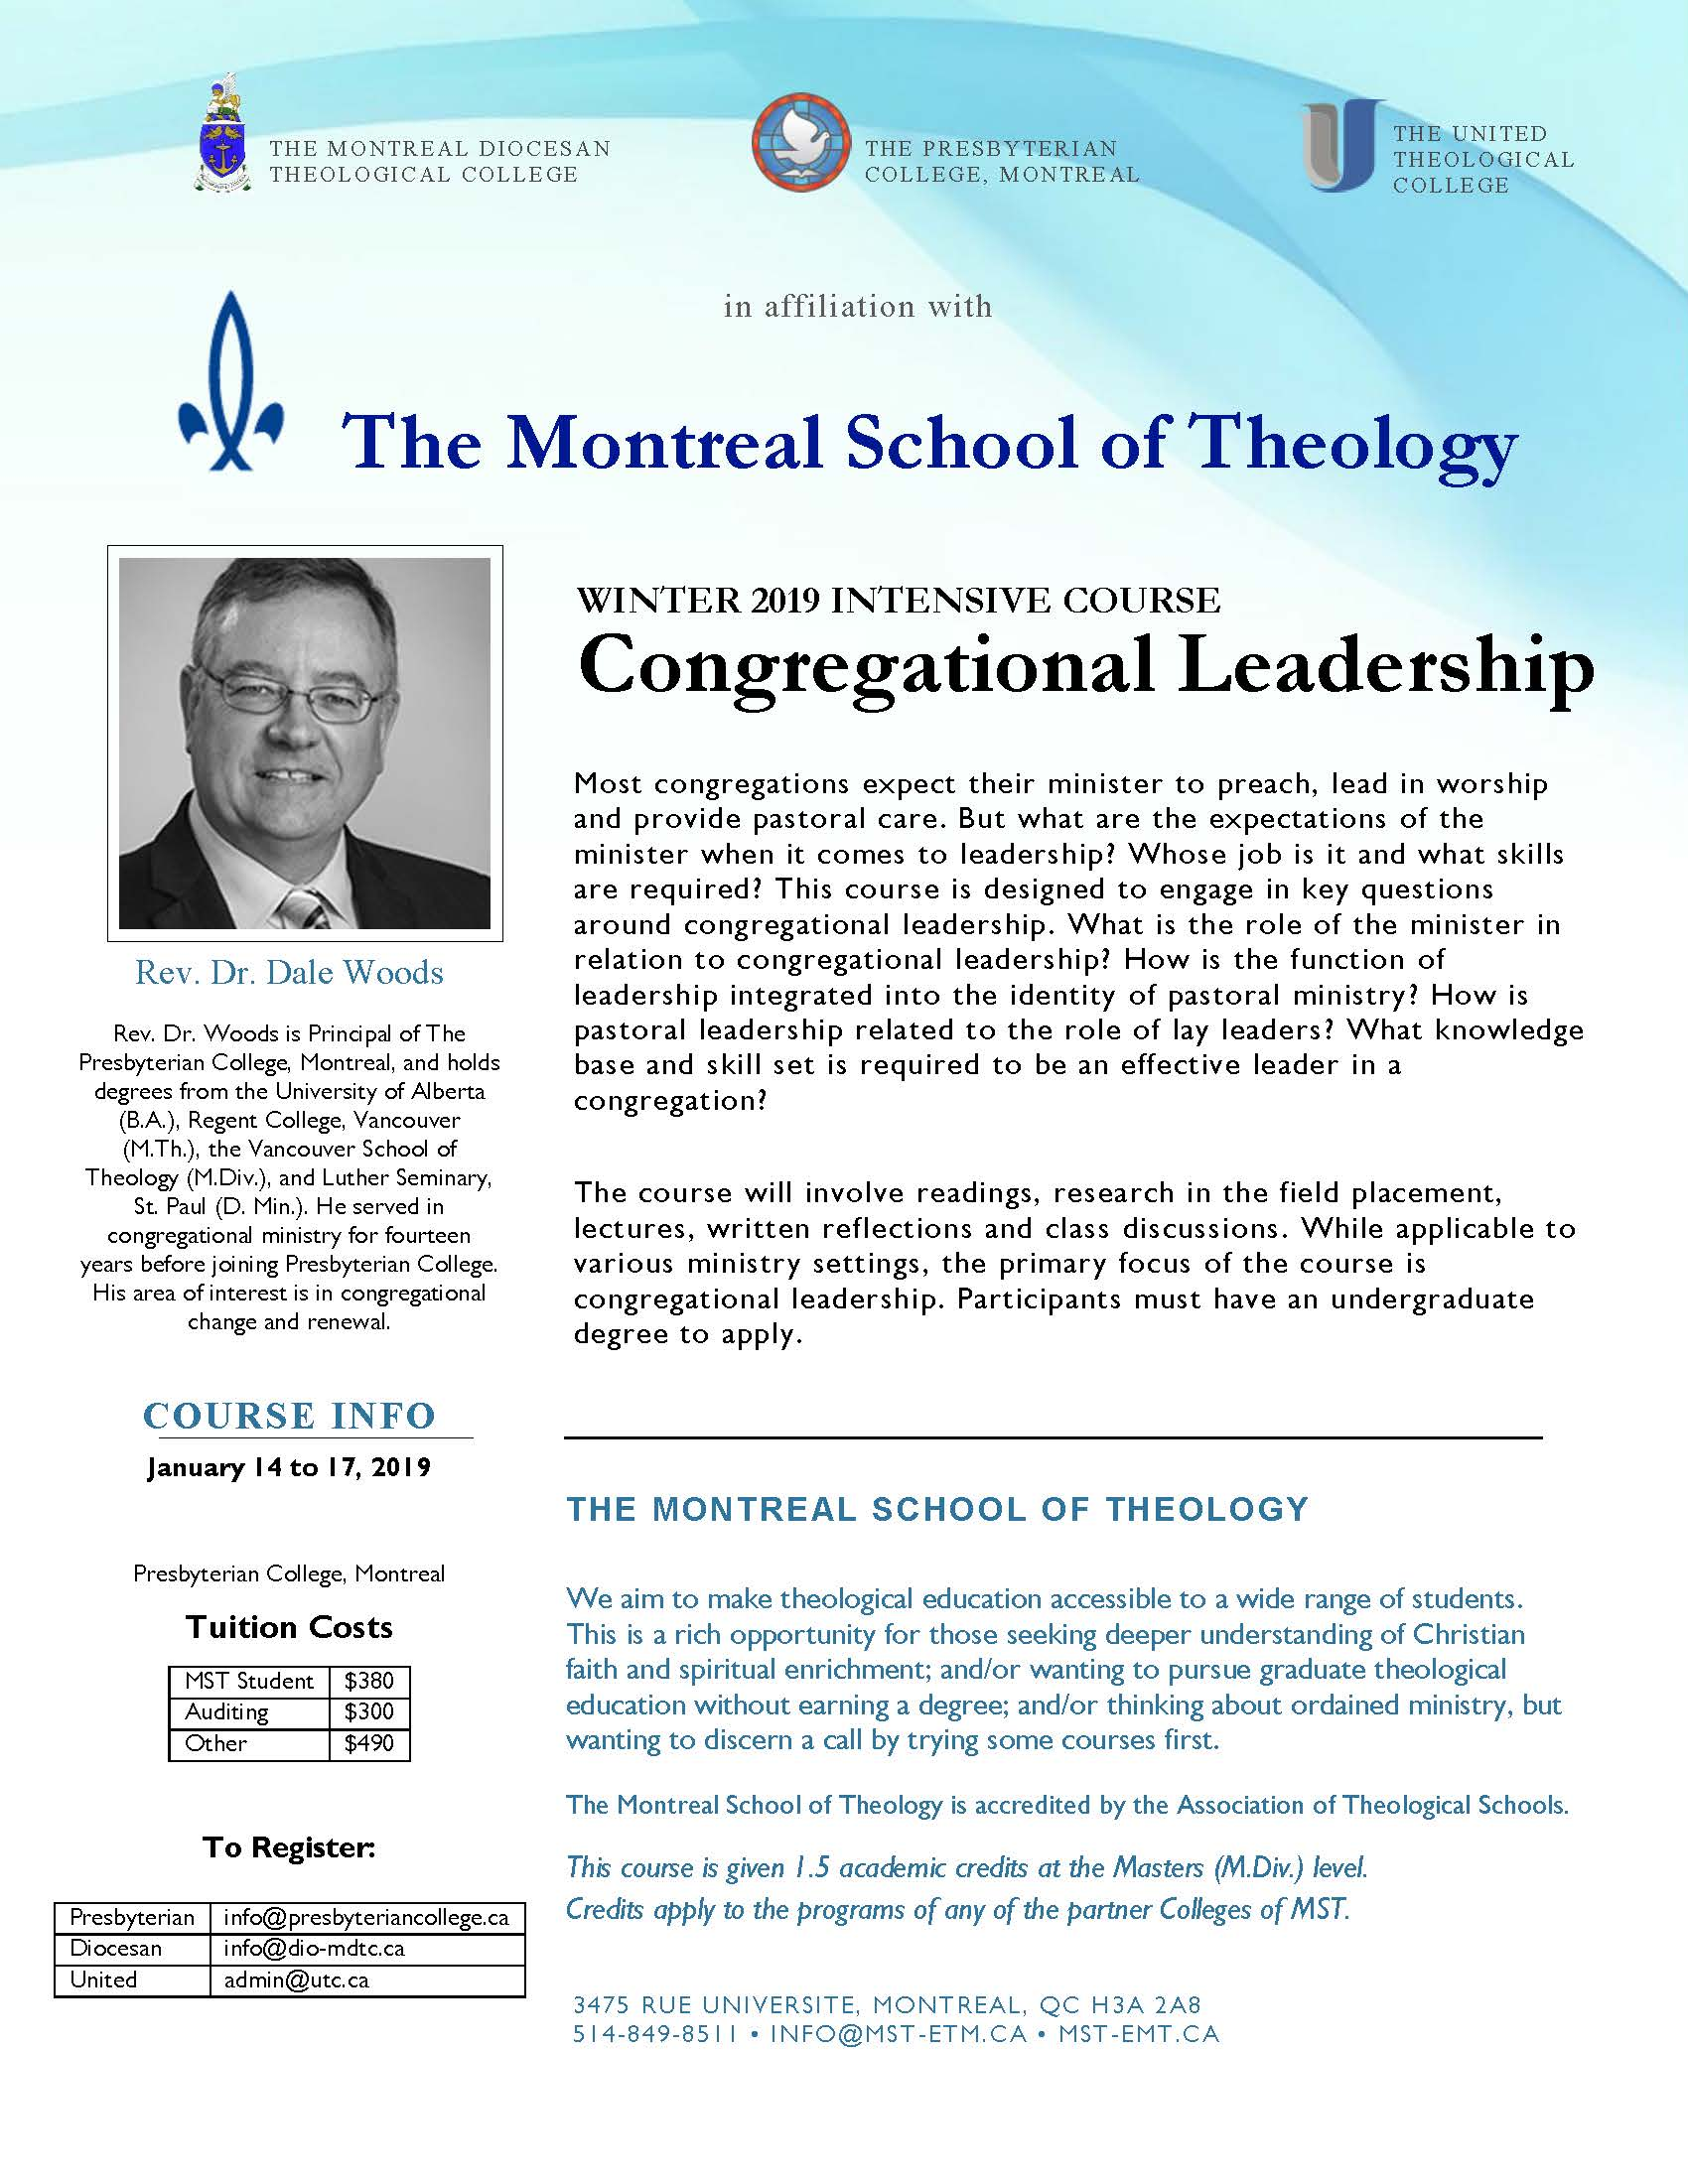 Winter 2019 Intensive Course : Congregational Leadership